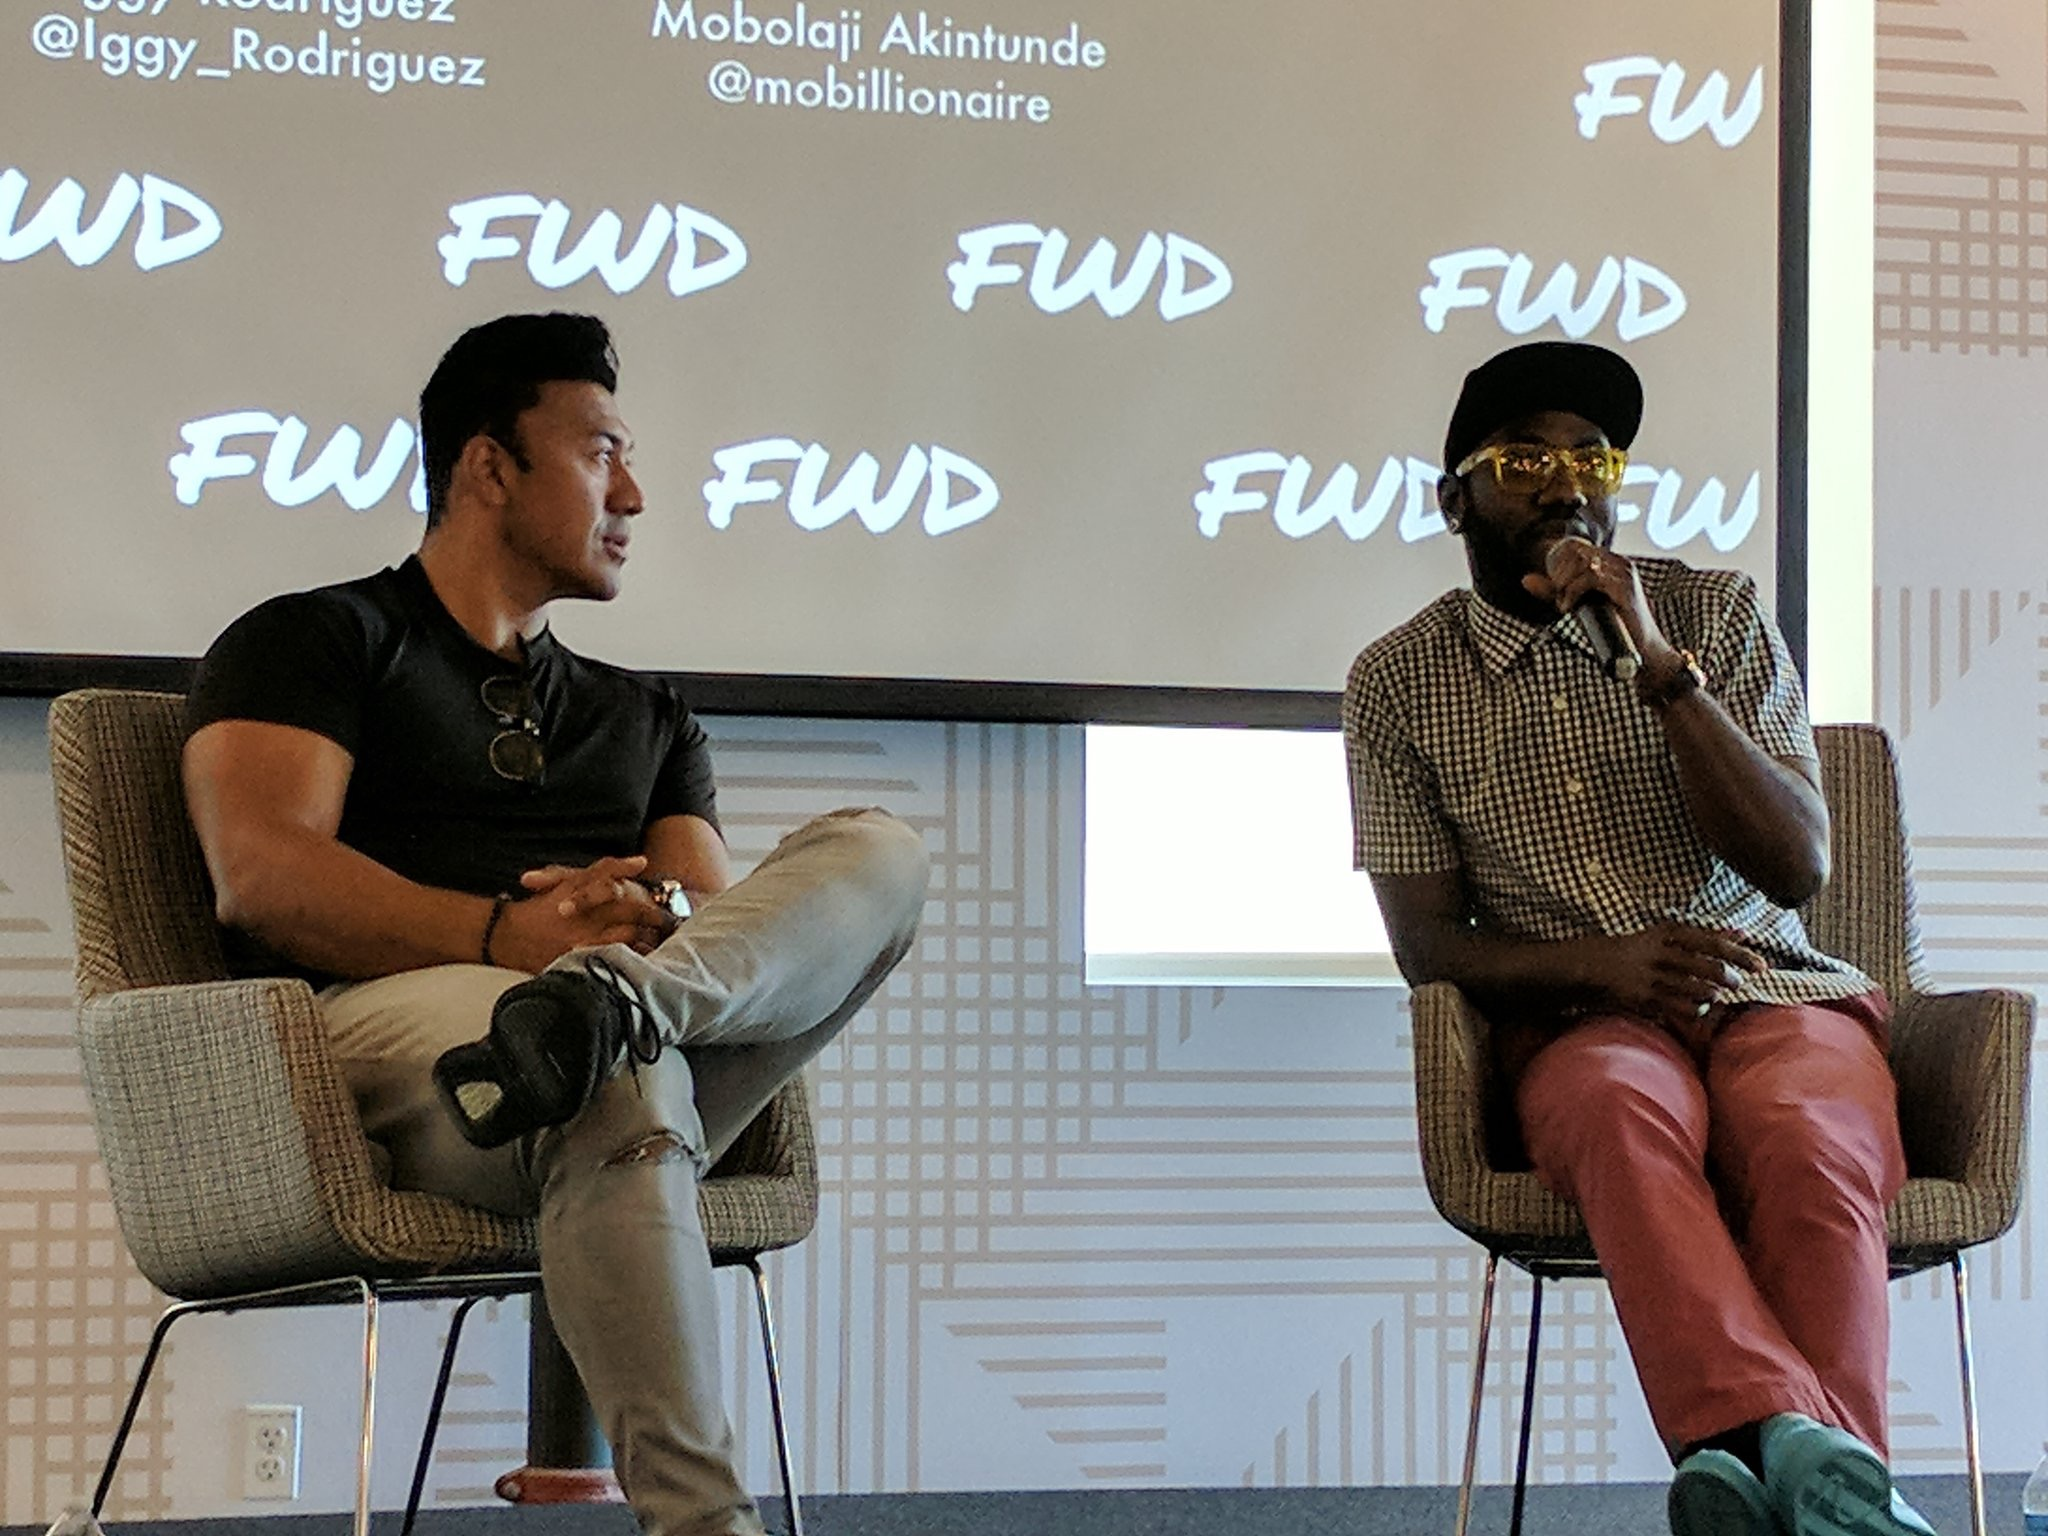 Mobolaji hosting fireside chat with Iggy Rodriguez at FWD Summit 2017.